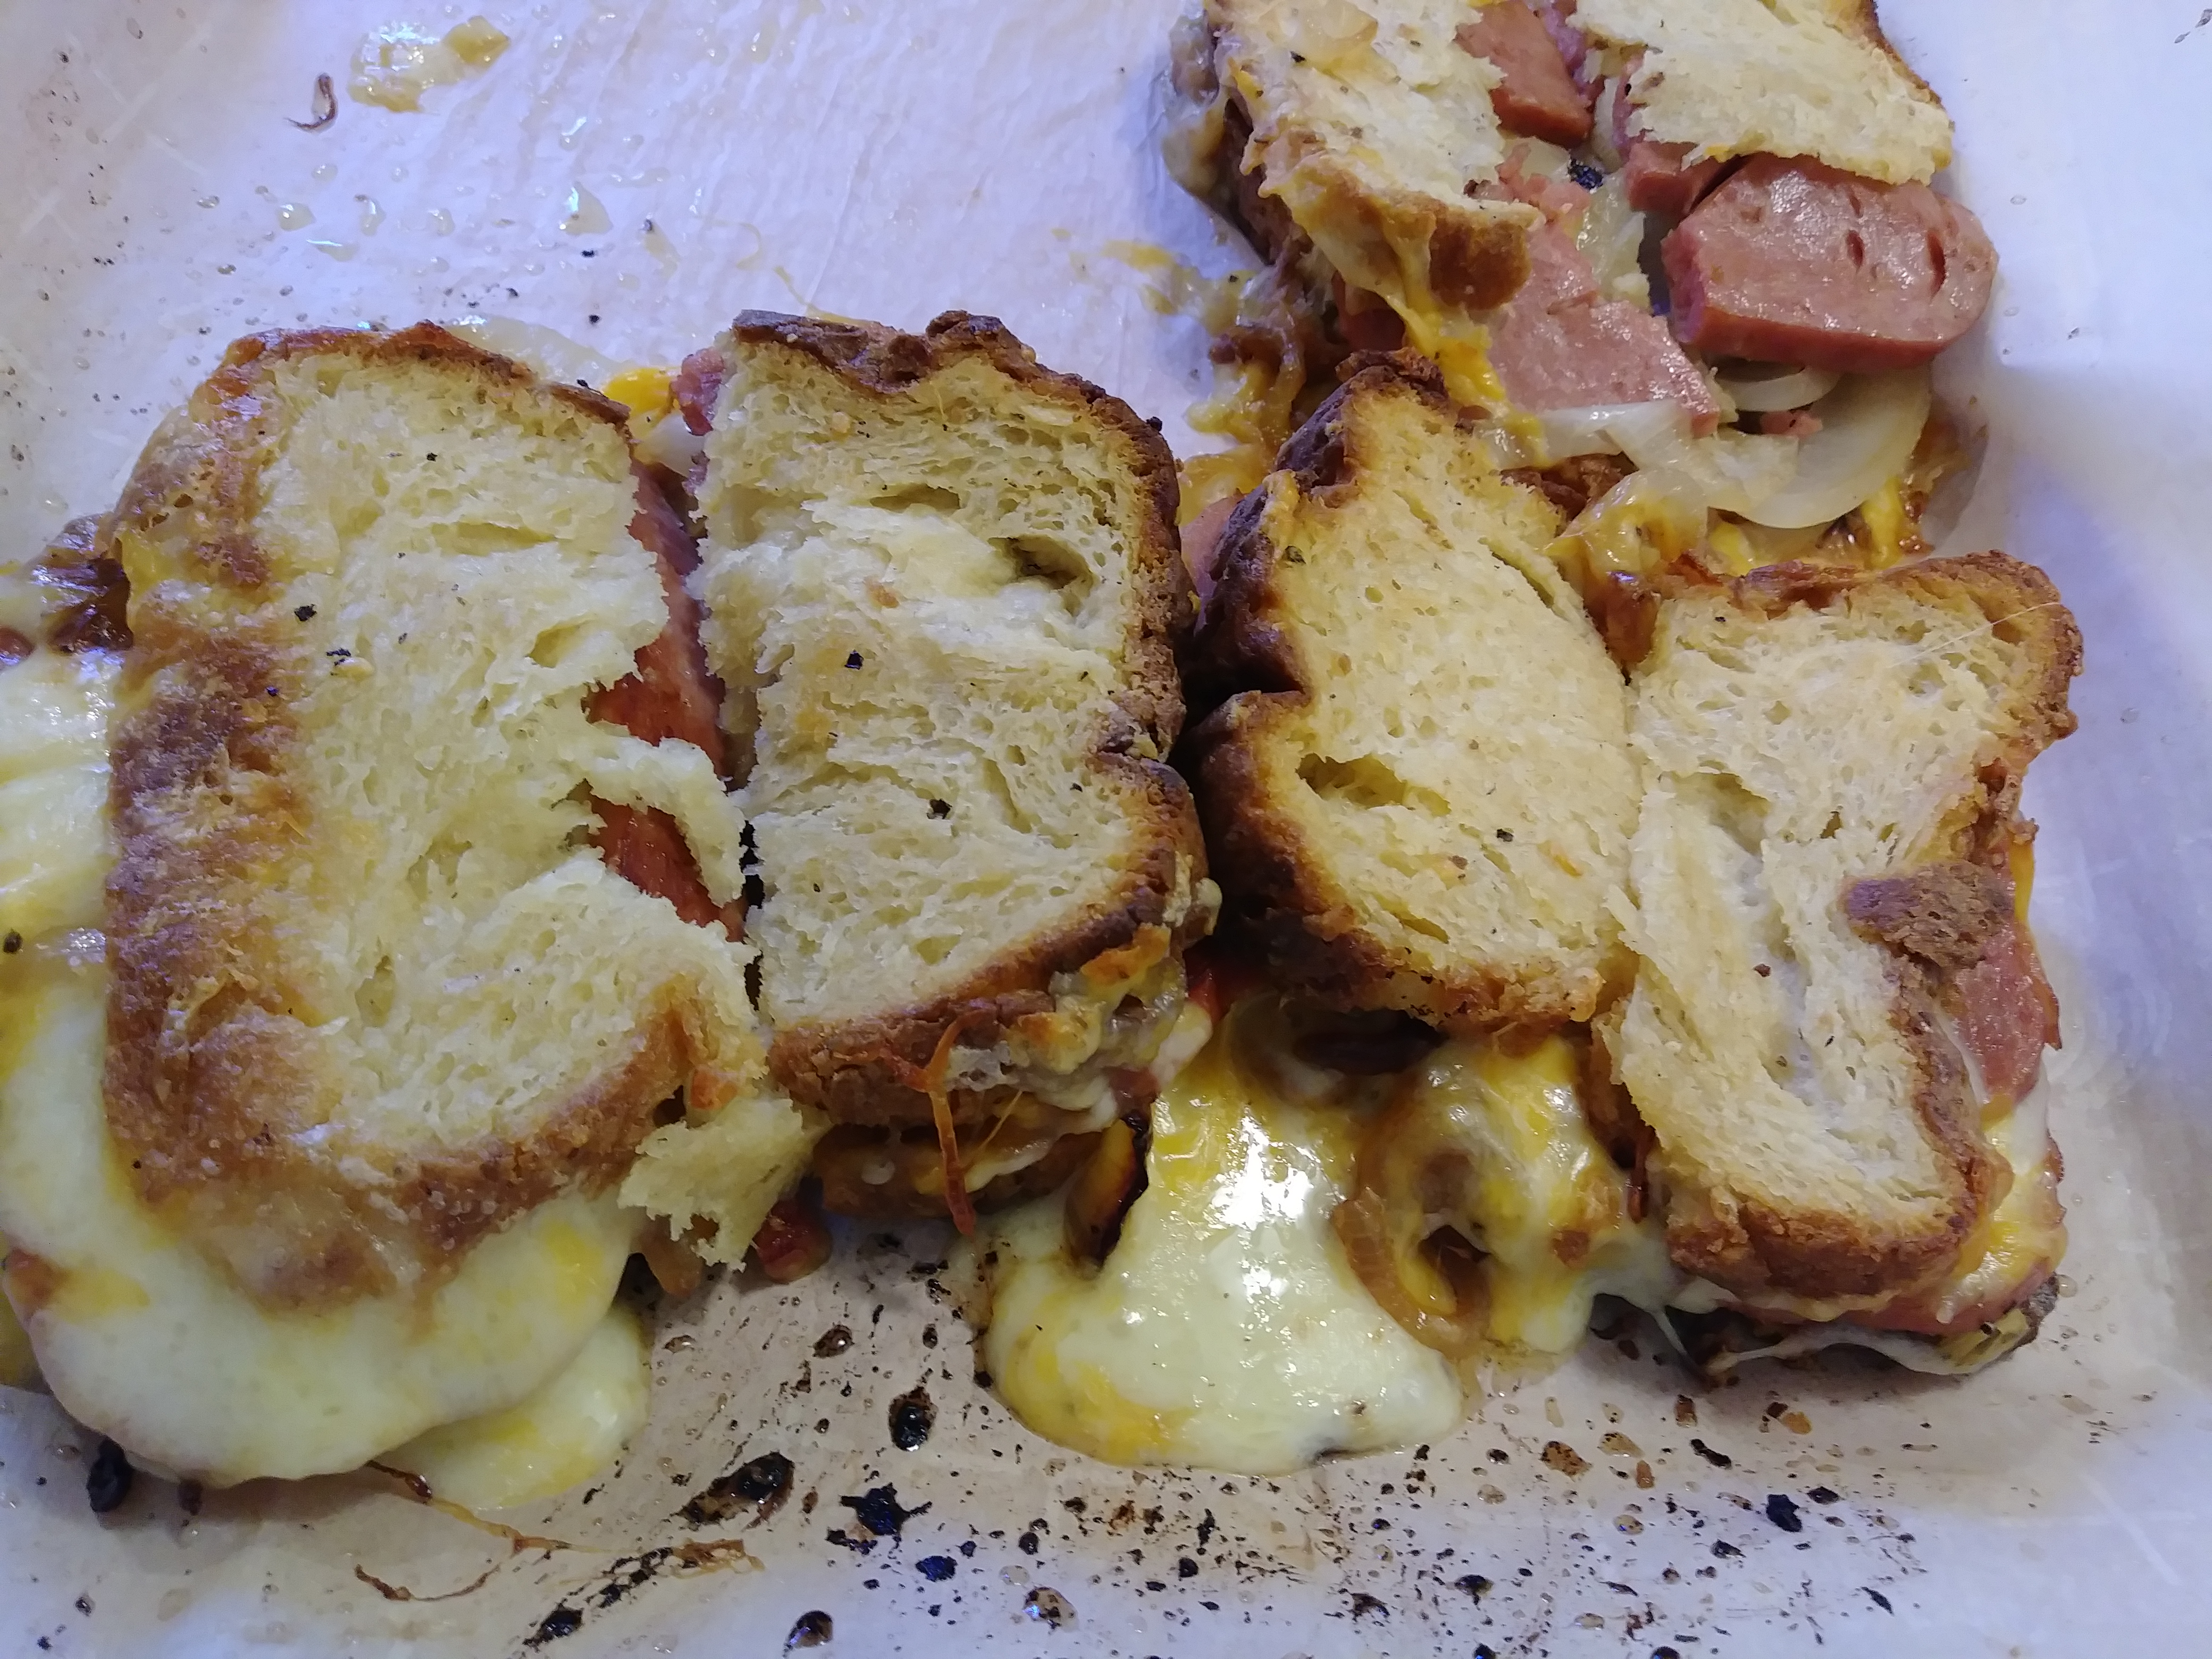 Grilled SPAM®, Tomato, Cheddar Cheese, and Sweet Onion Sandwiches